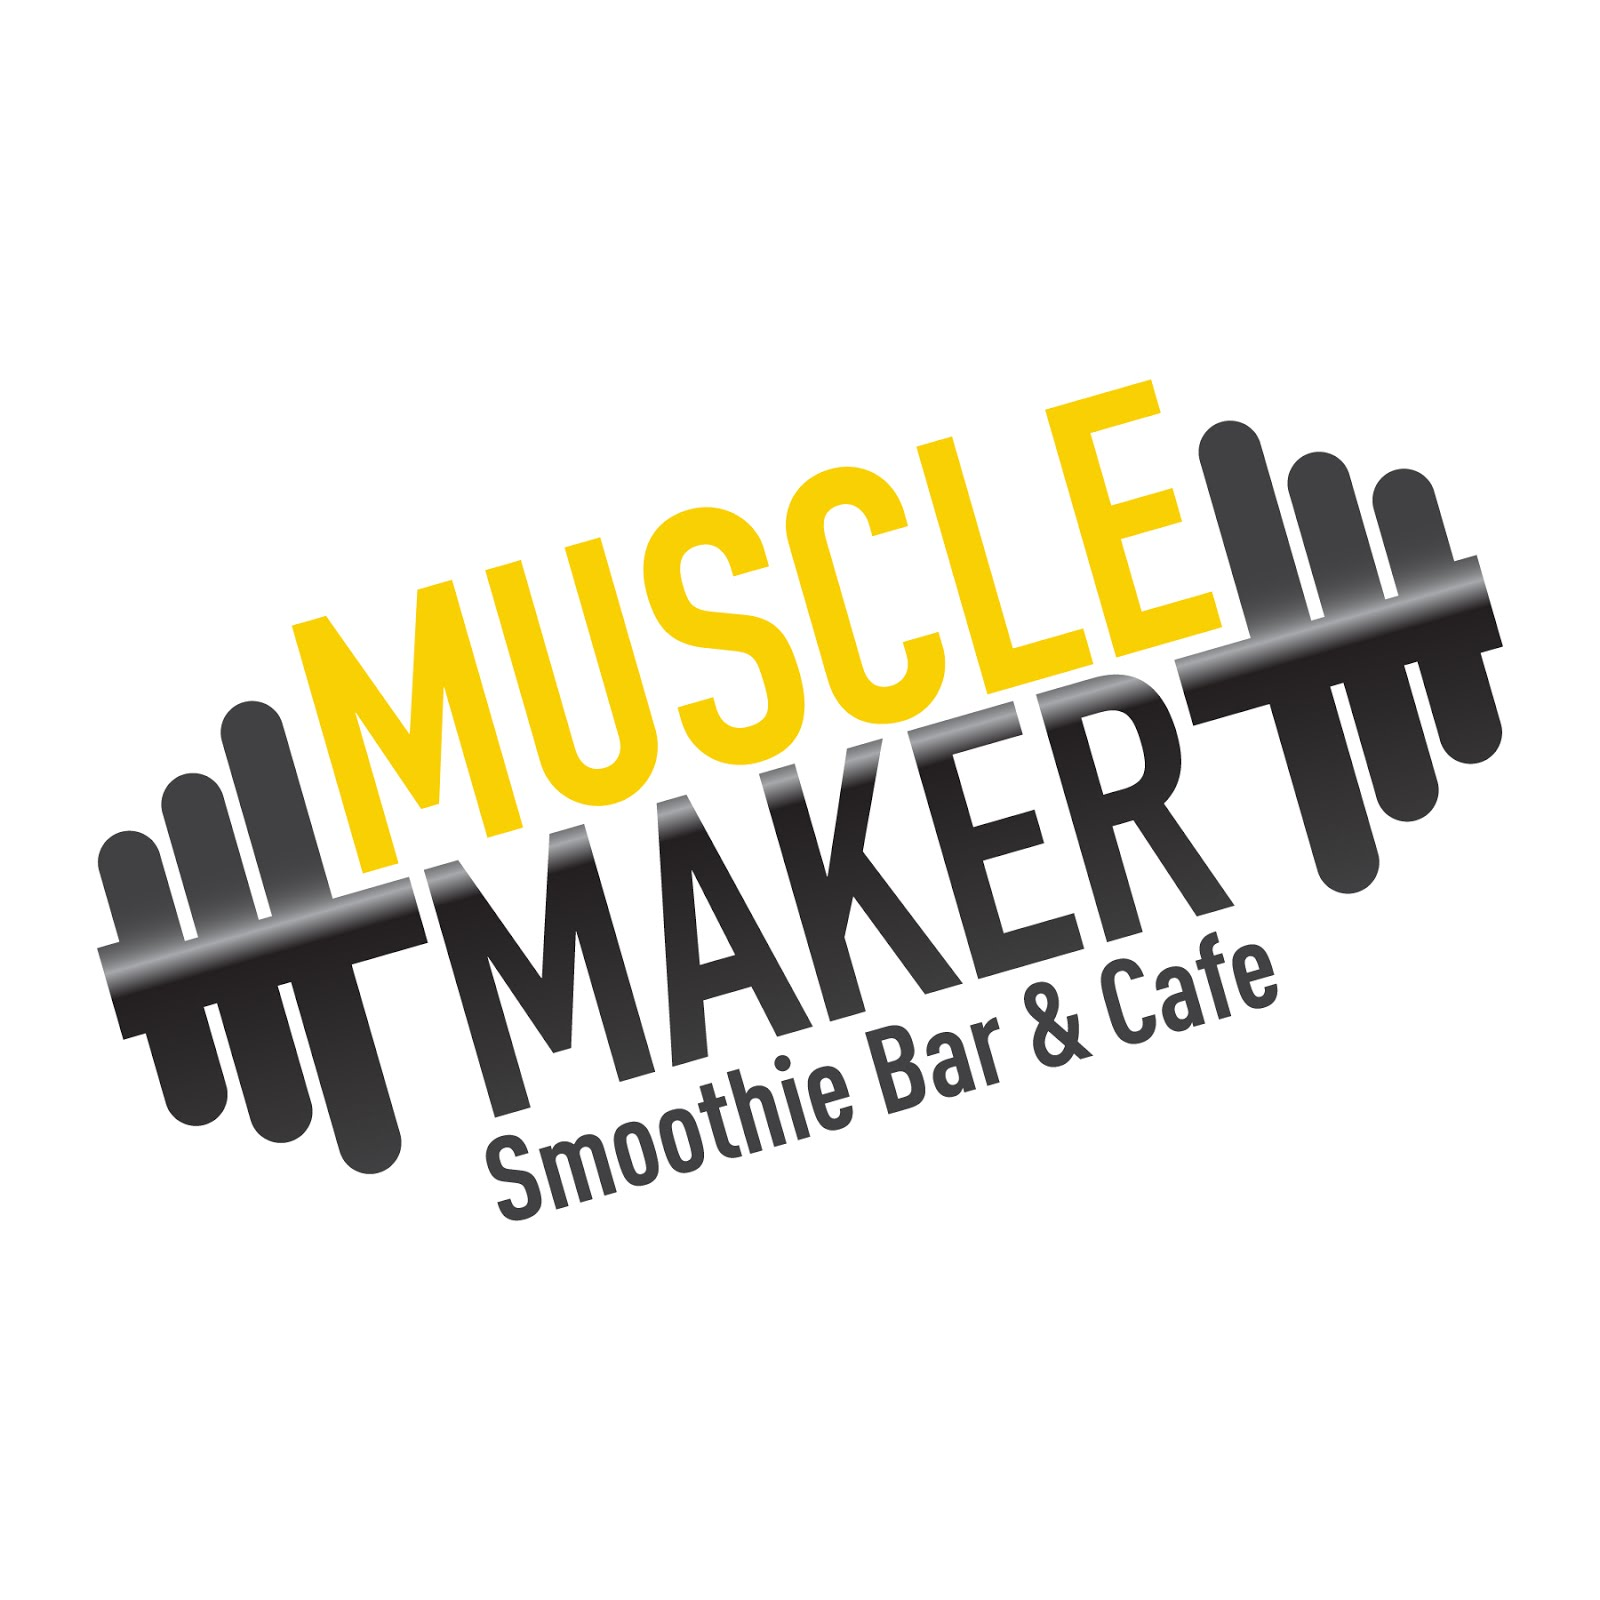 Muscle Maker Smoothie Bar & Cafe